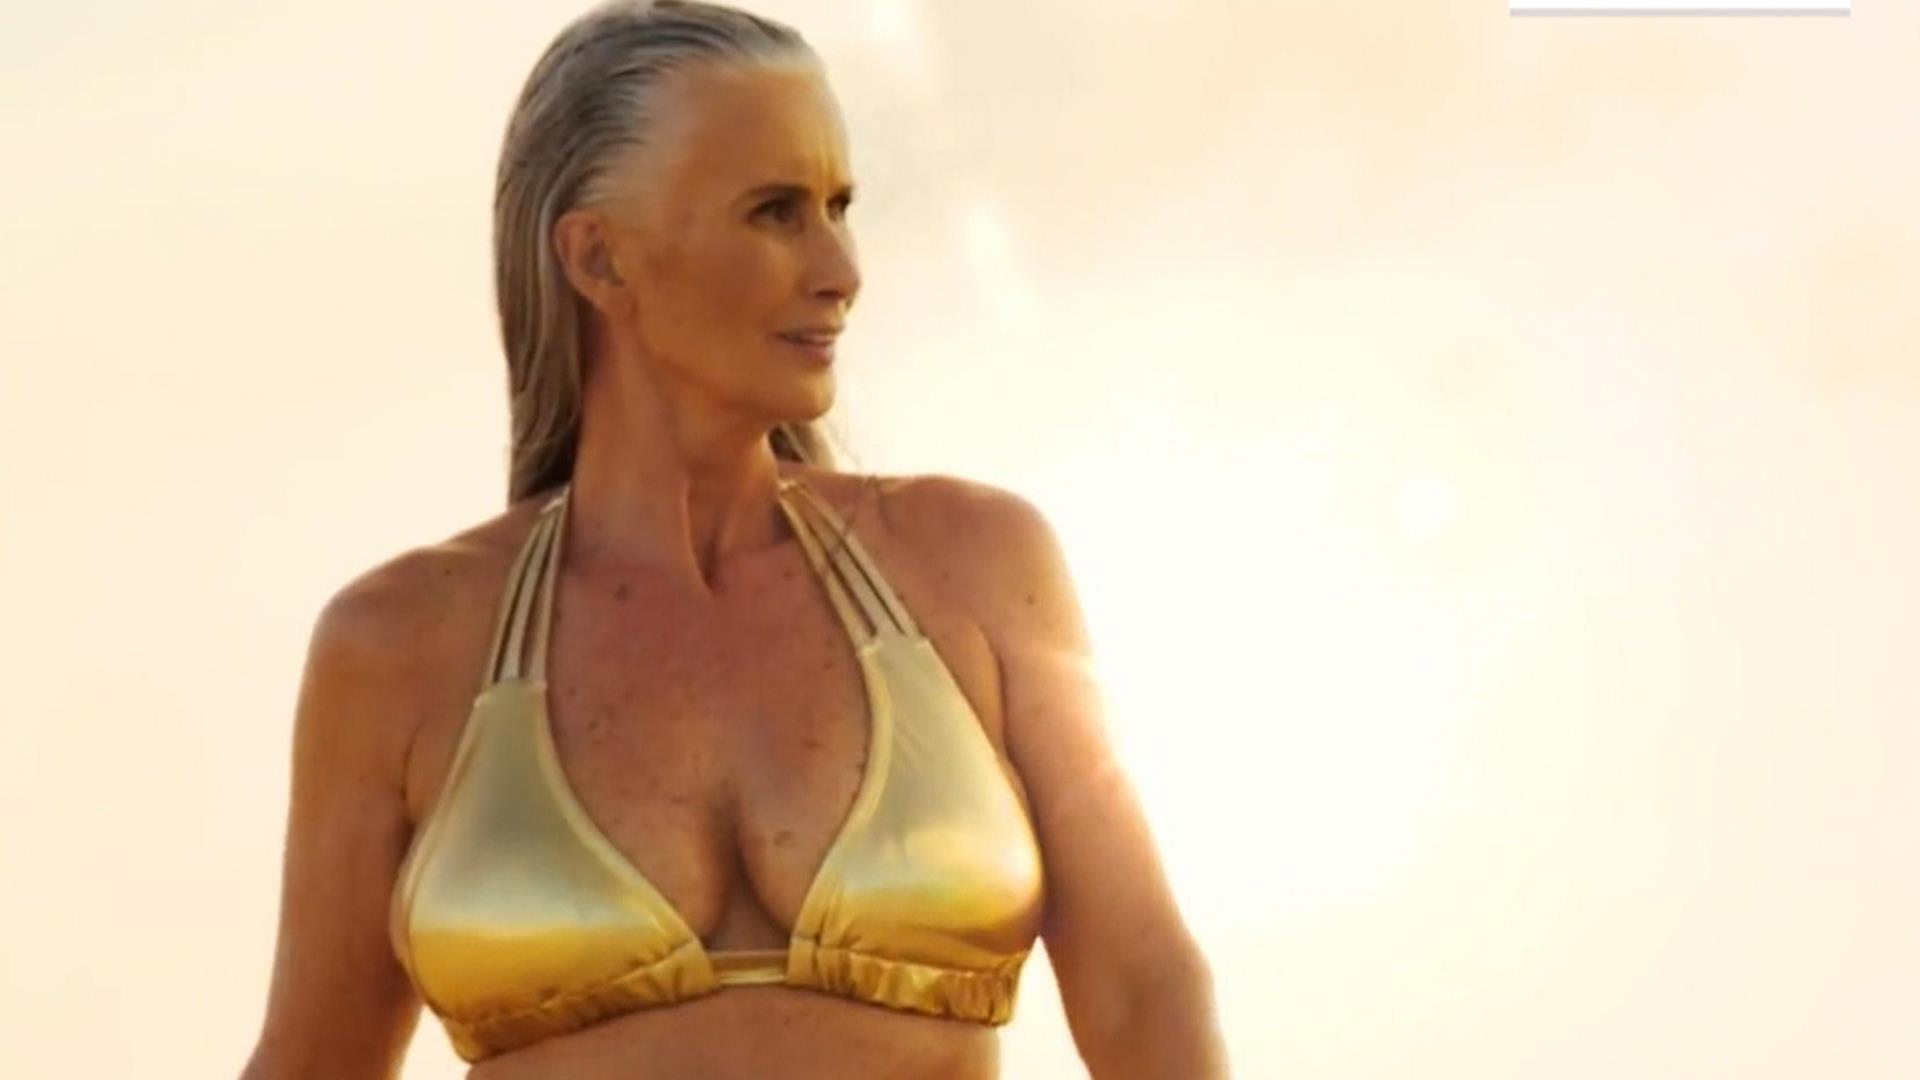 sports illustrated features 56-year-old model in annual swimsuit issue